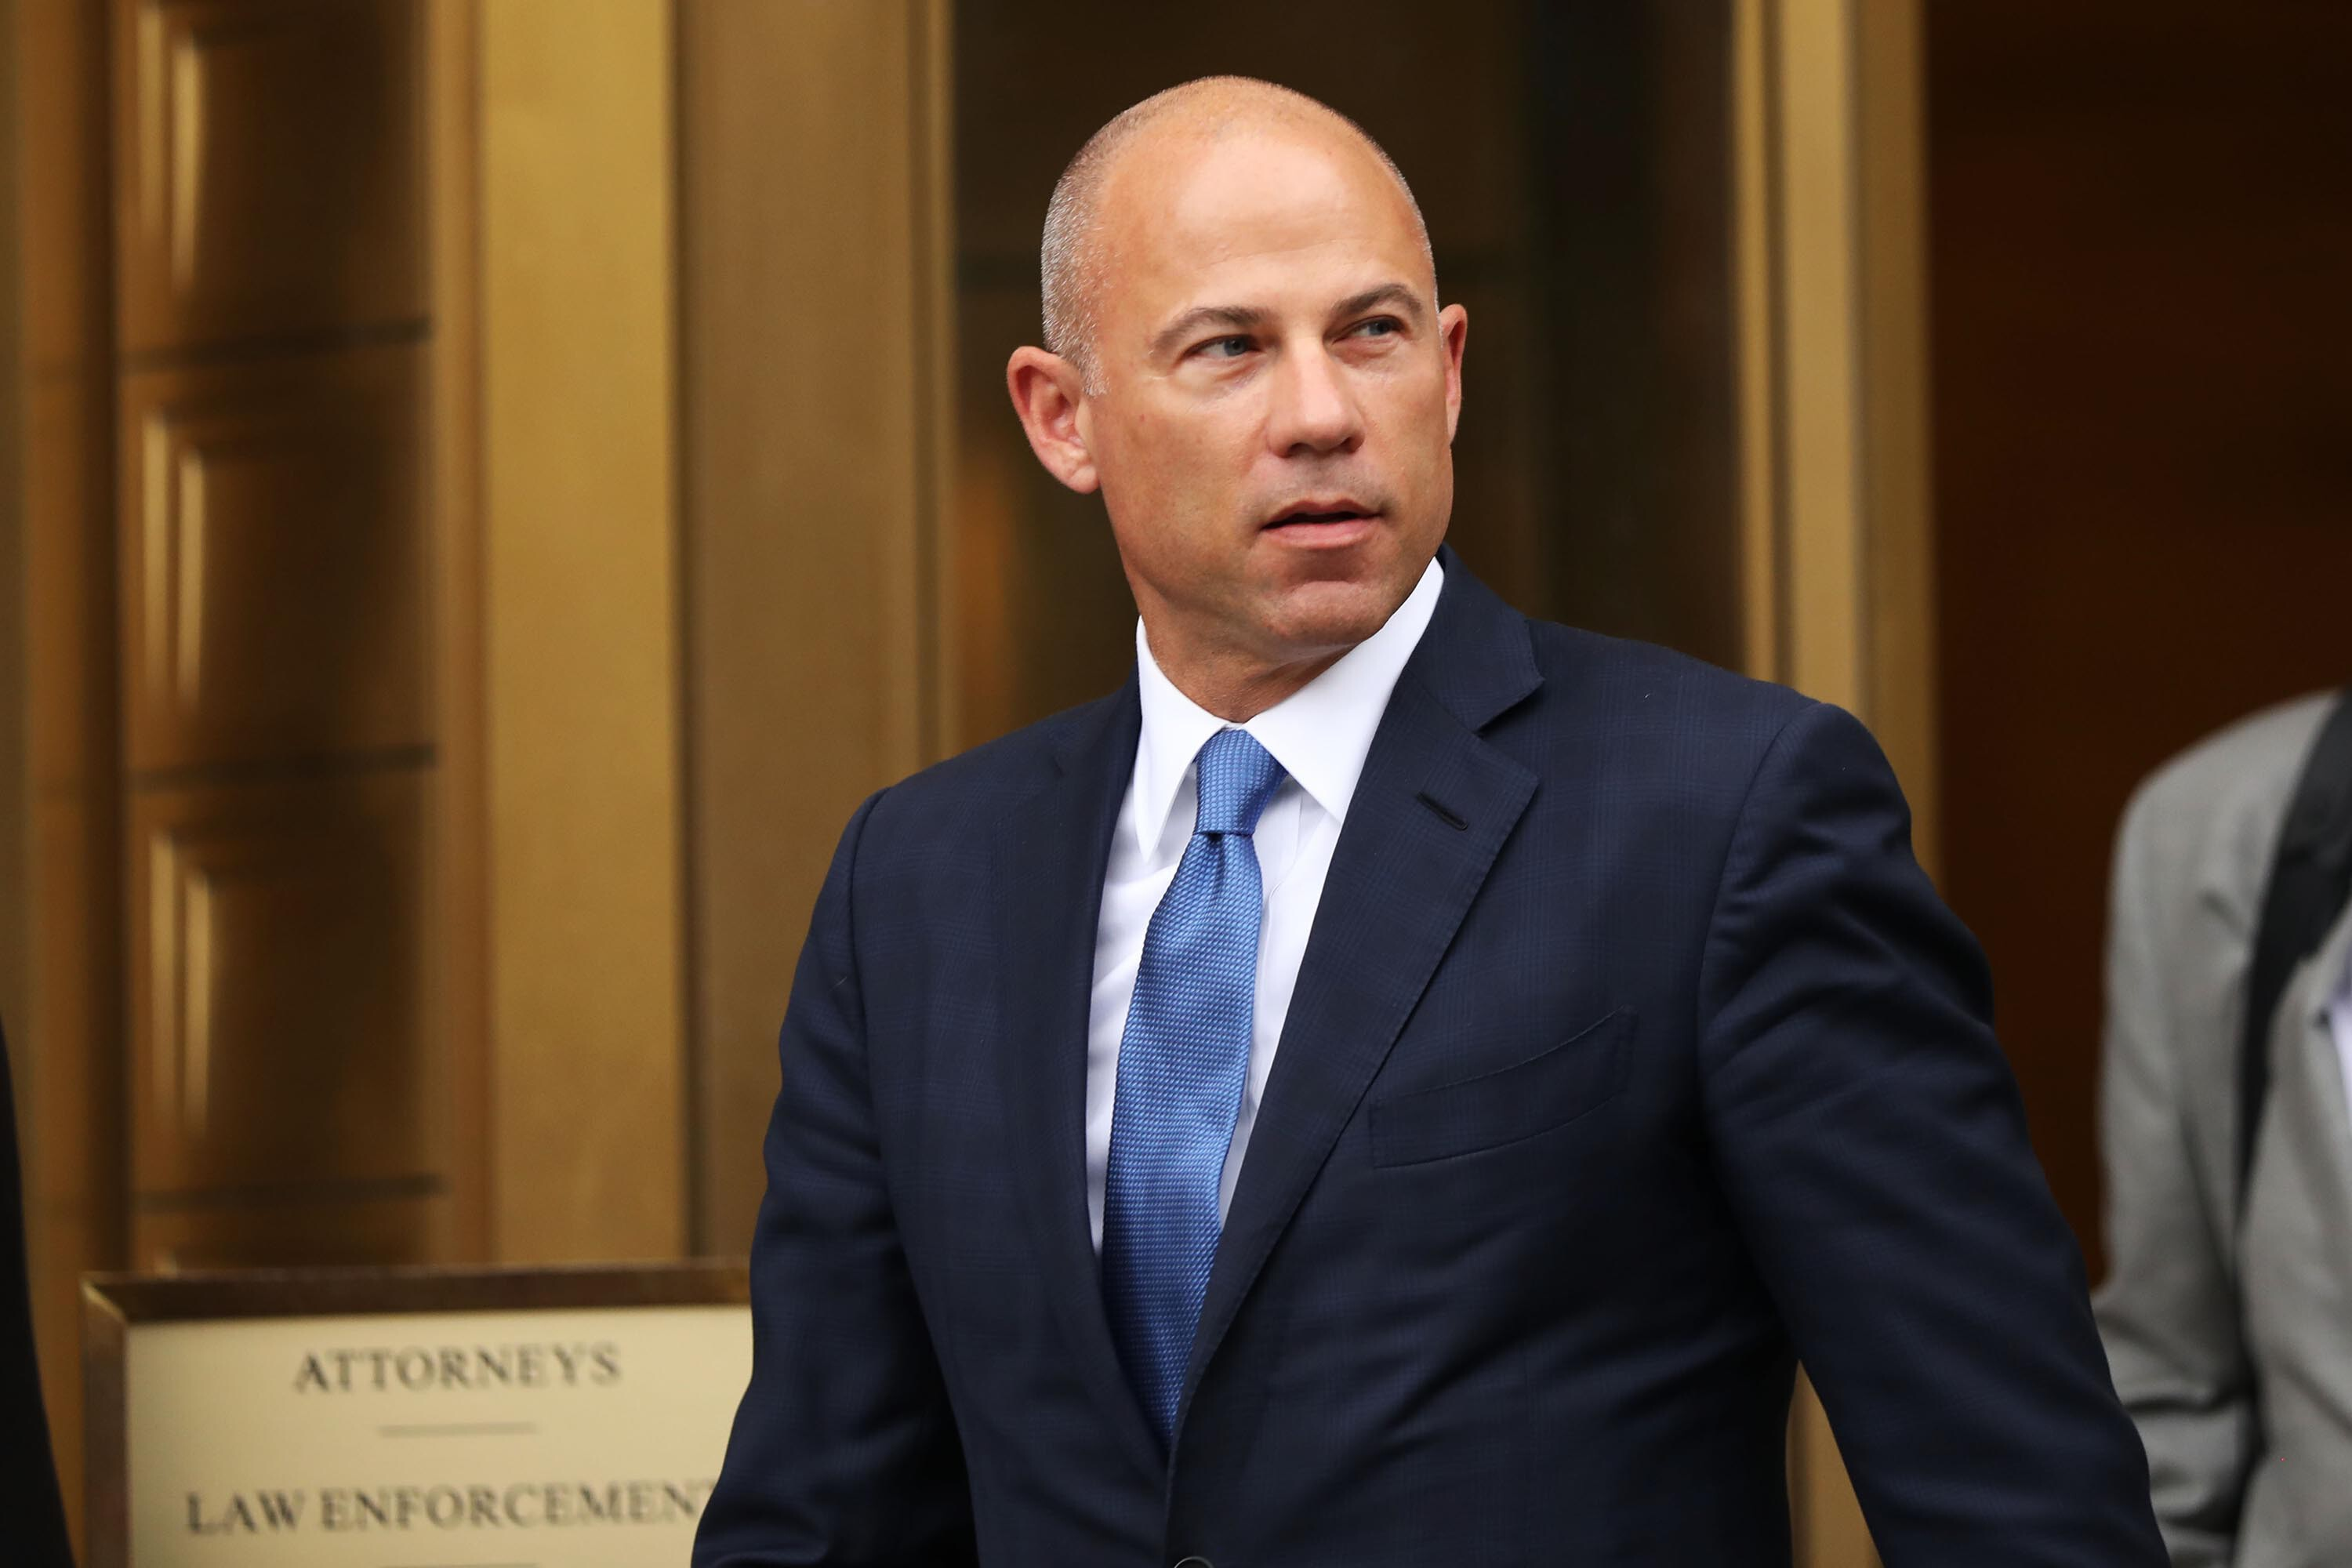 Michael Avenatti sentenced to 2.5 years in prison for attempting to extort Nike